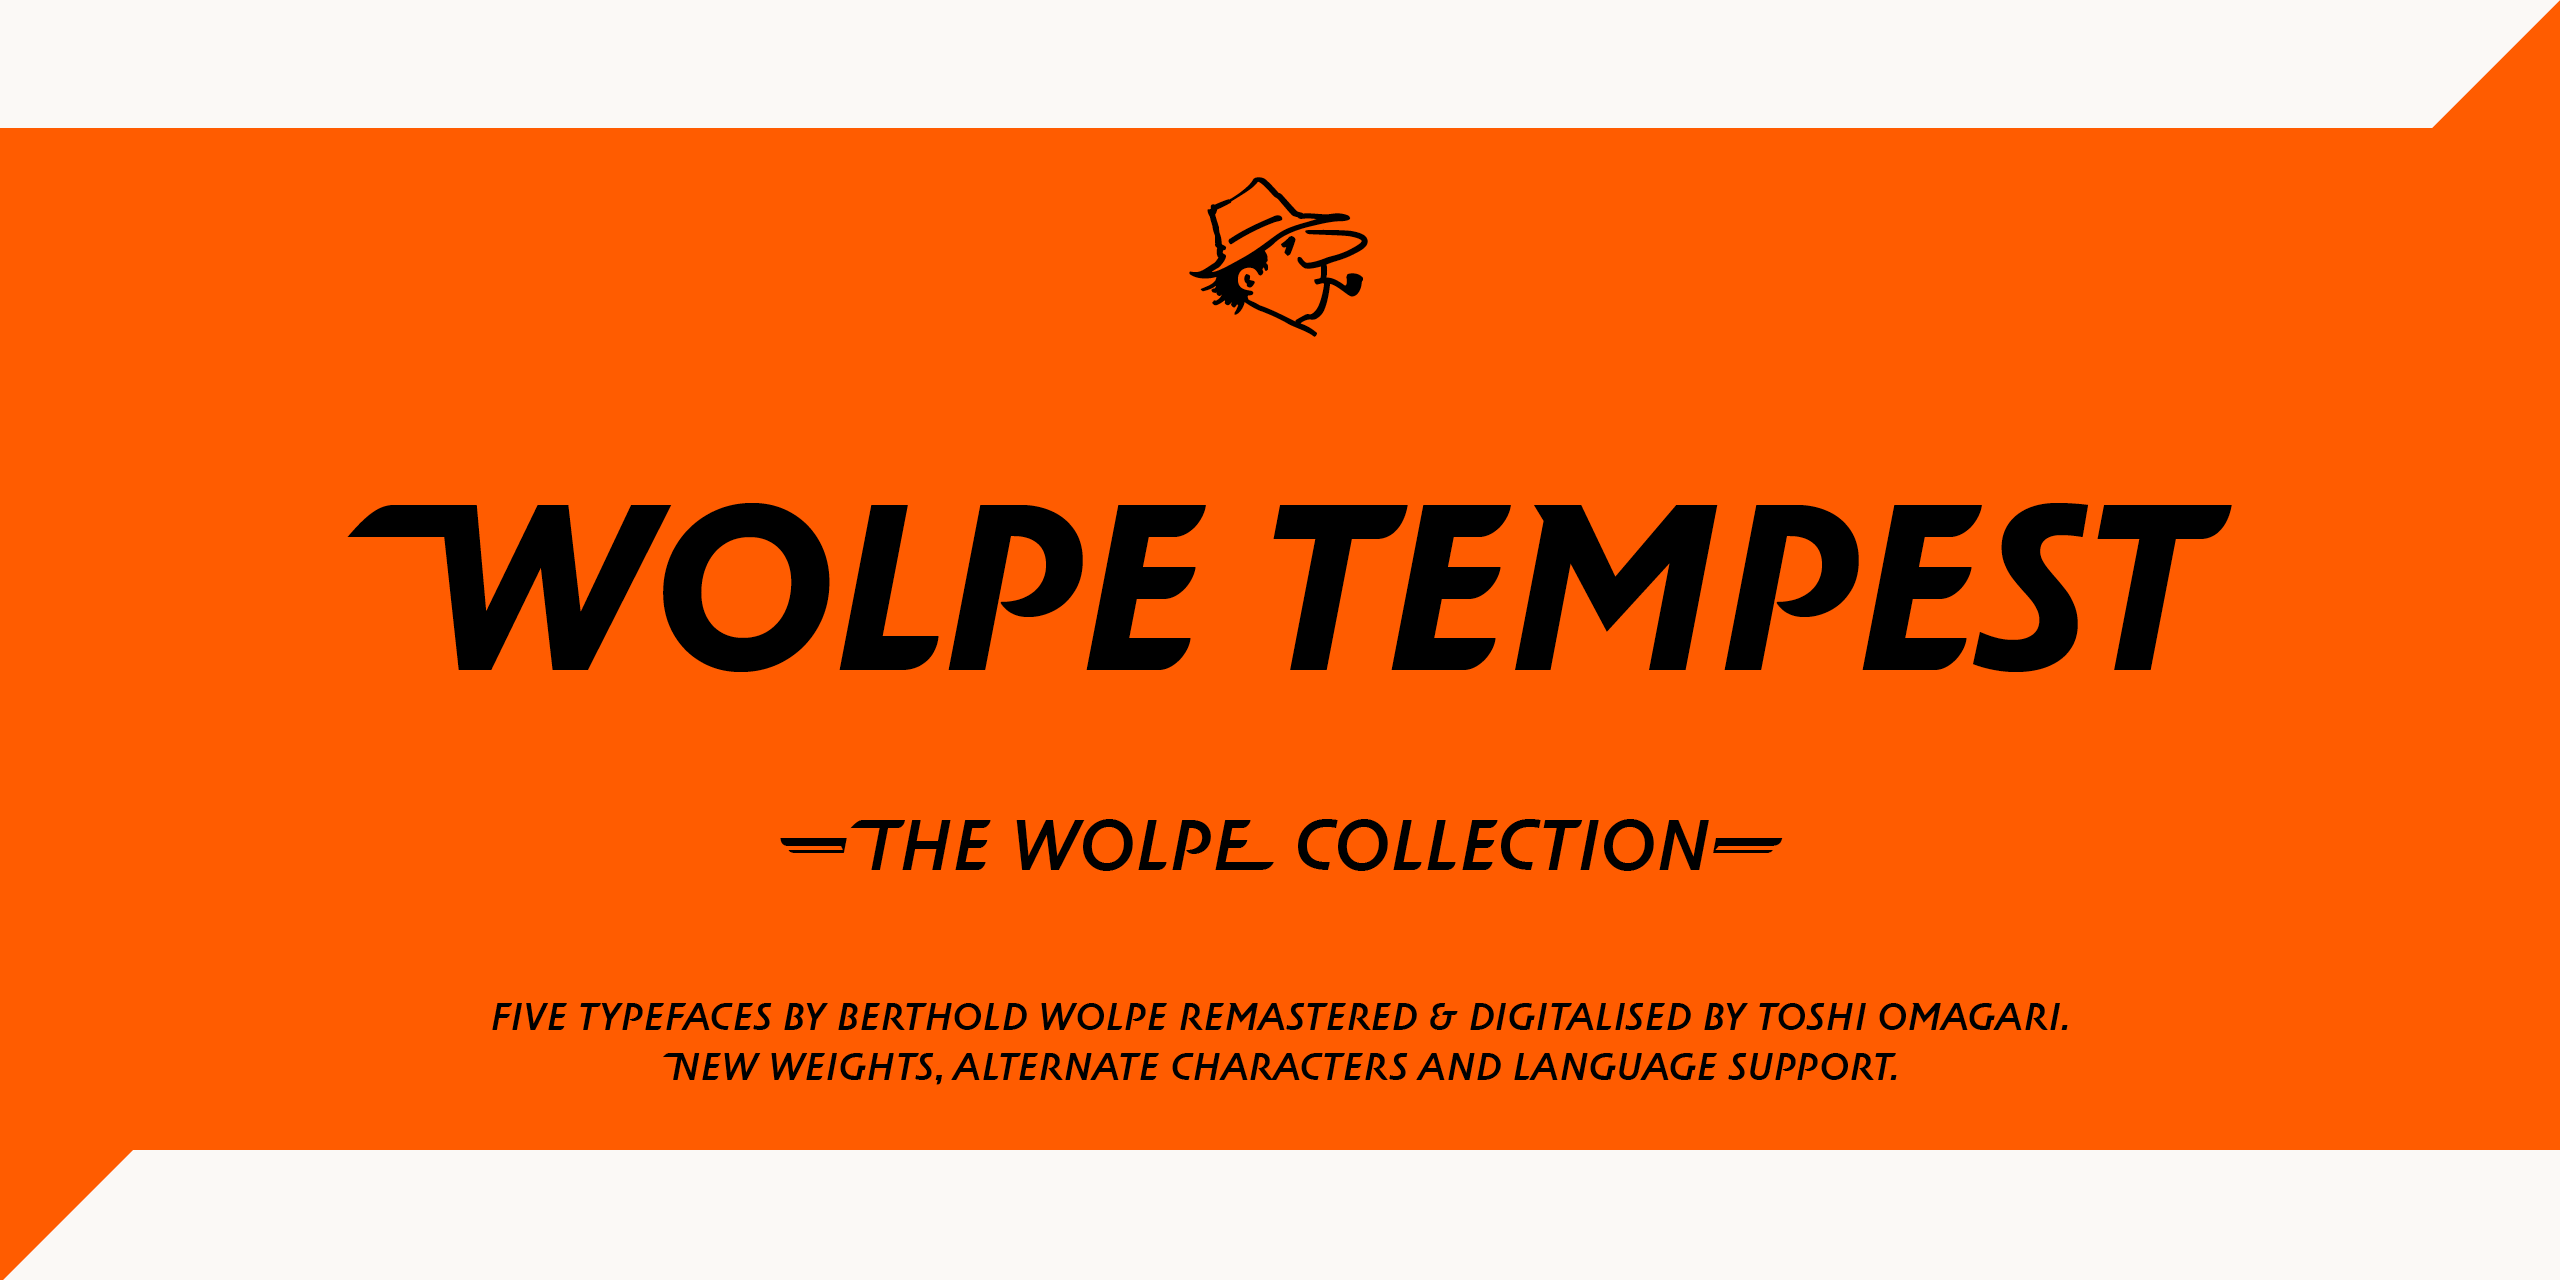 The Wolpe Collection – Wolpe Tempest